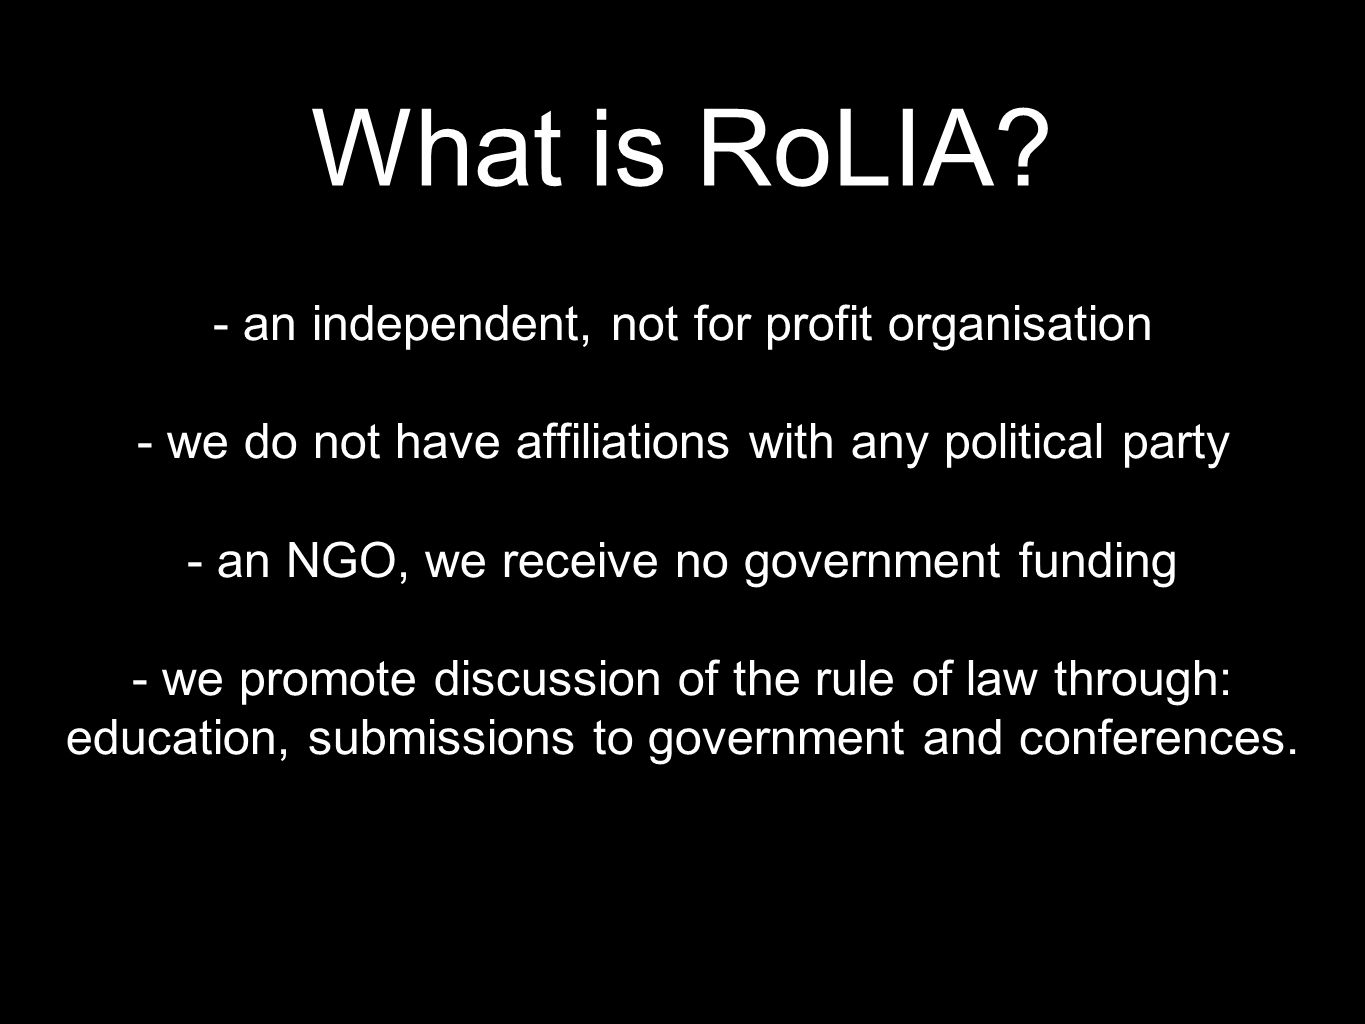 What is RoLIA - an independent, not for profit organisation